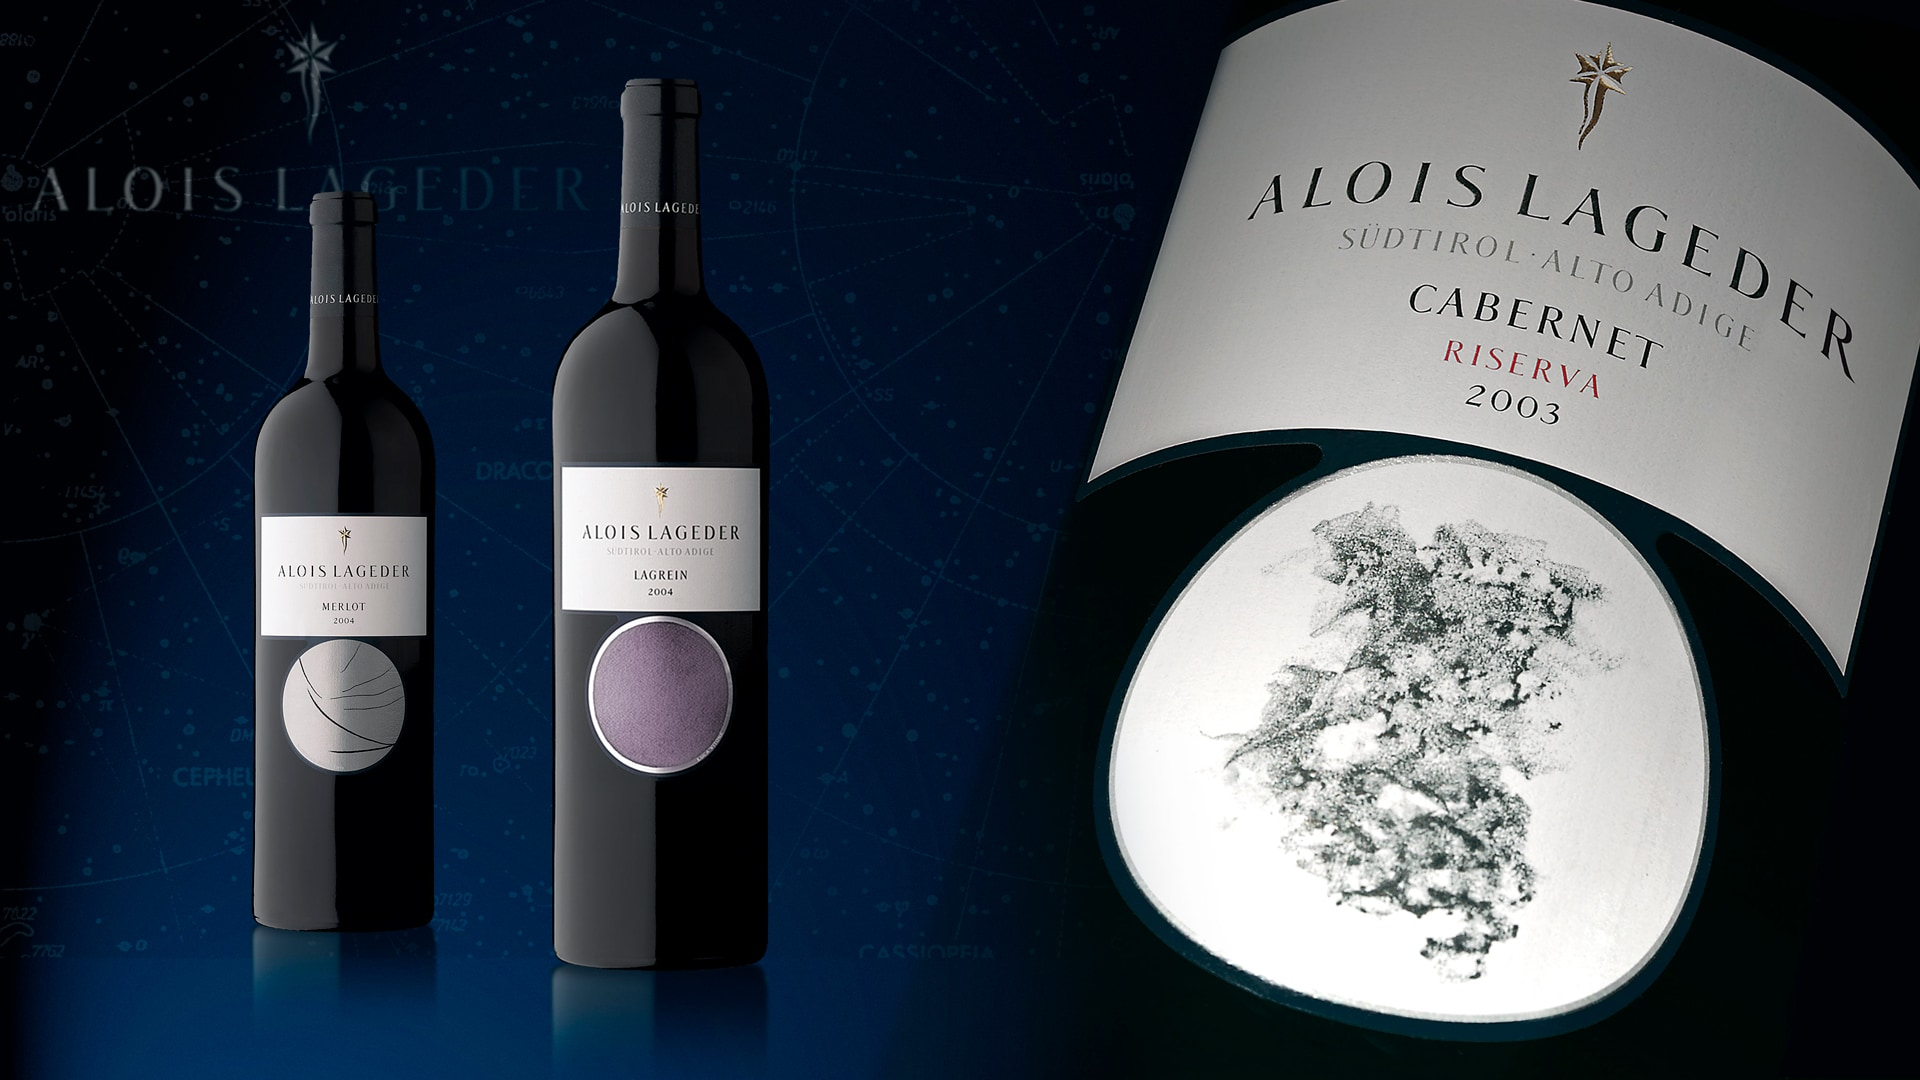 Alois Lageder Comete packaging